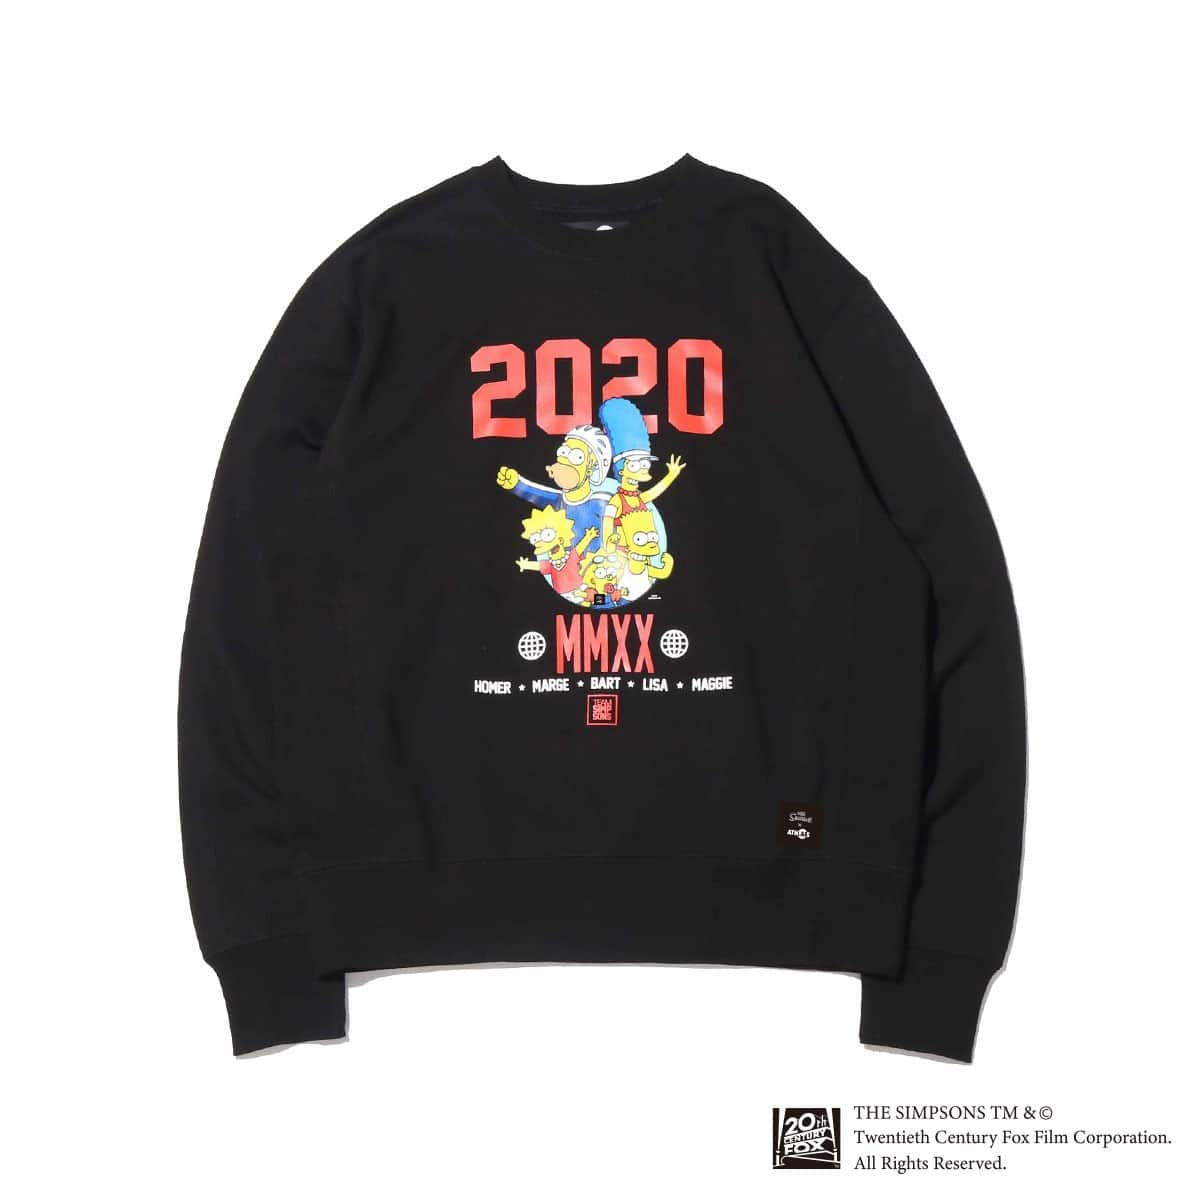 ATMOS LAB x THE SIMPSONS 2020 FAMILY CREW BLACK 20SP-S_photo_large